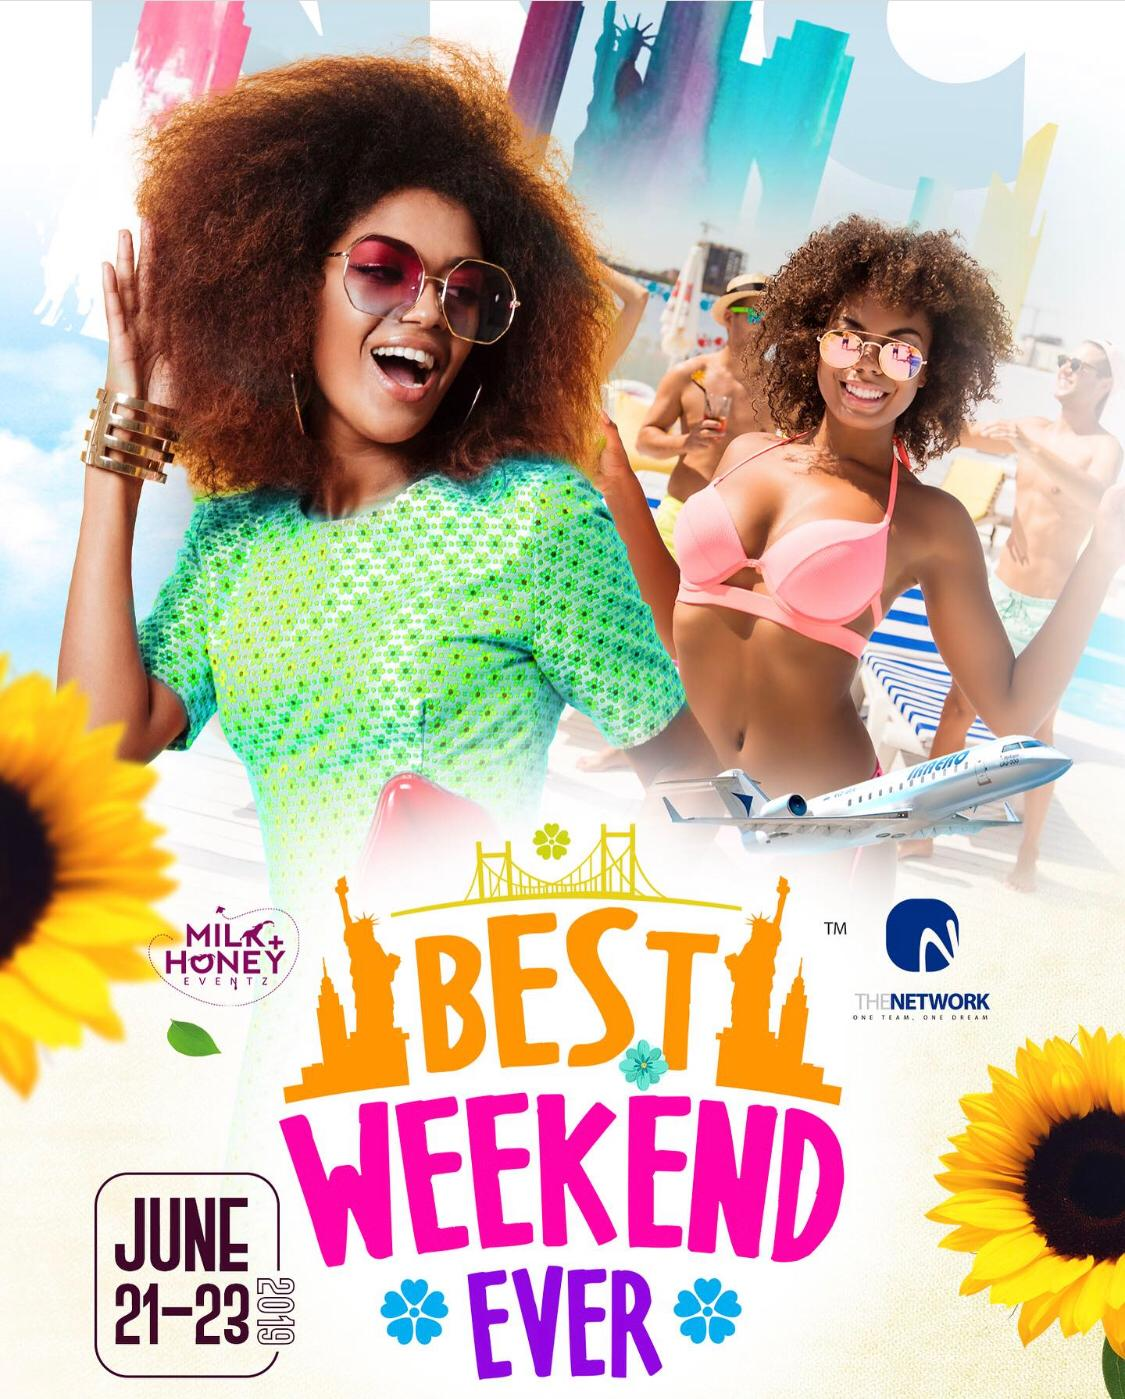 BEST WEEKEND EVER - NYC'S Premium Caribbean Party Experience